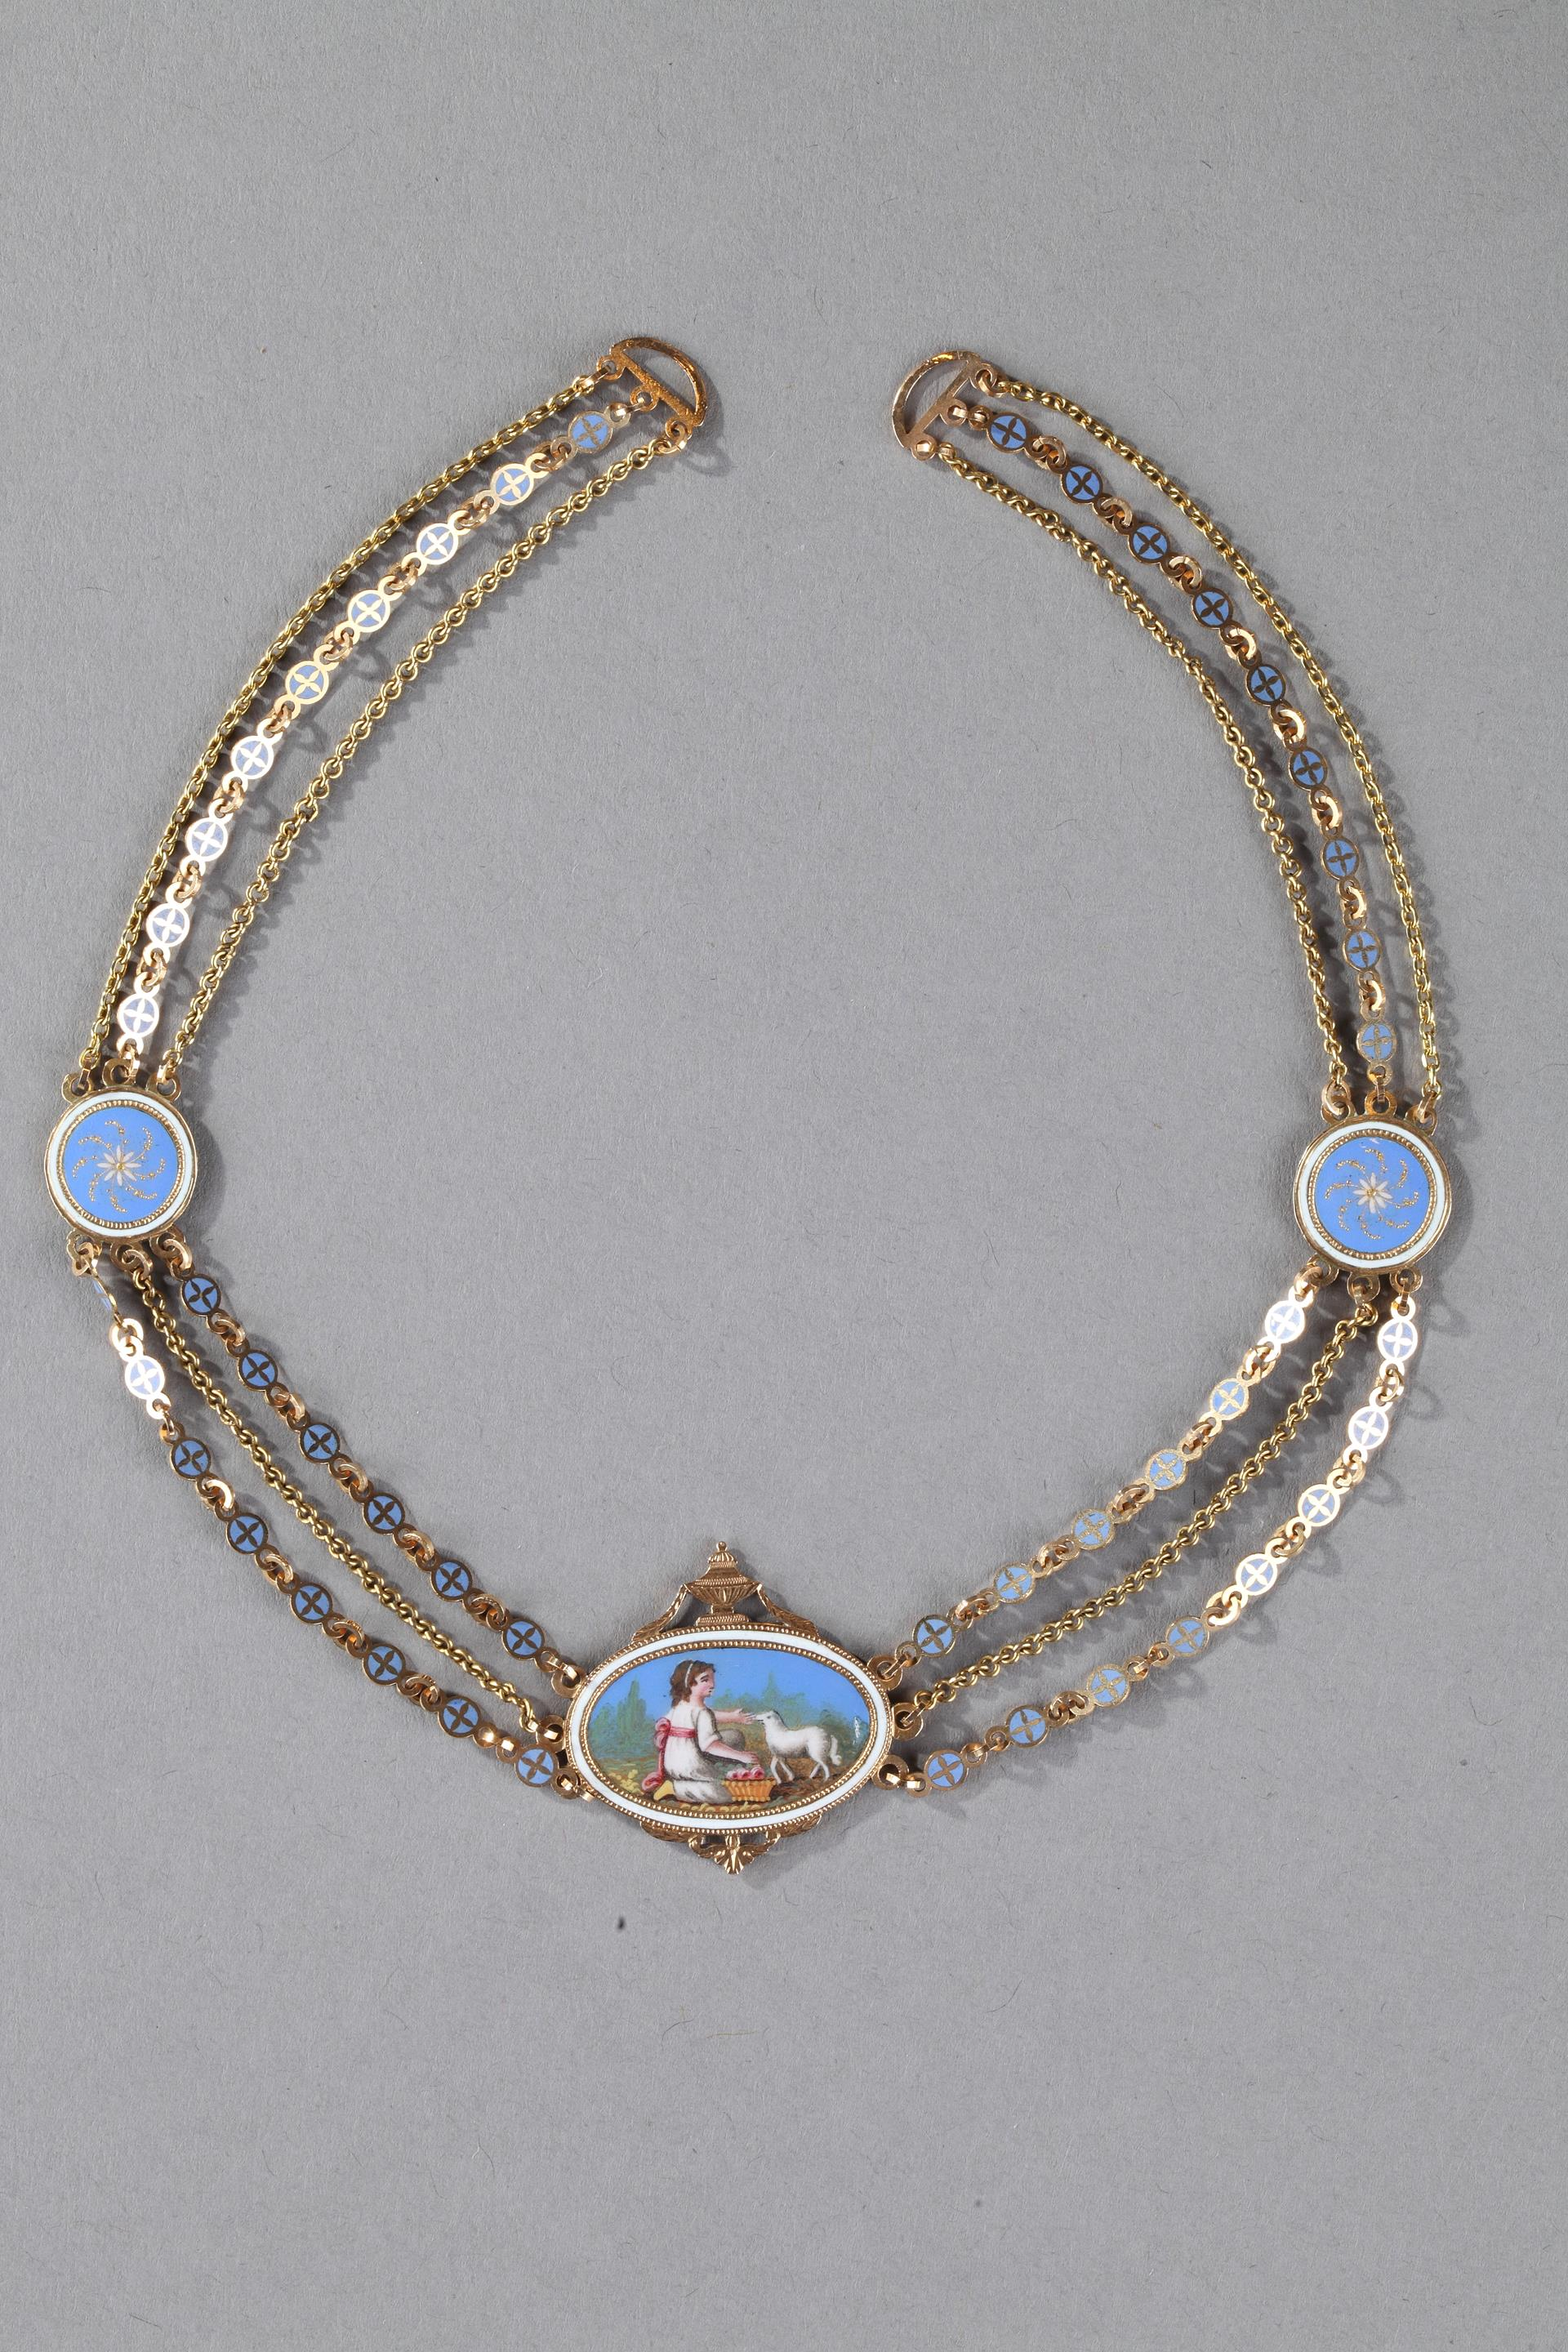 Chain Link Necklace with Gold and Enamel Plates.